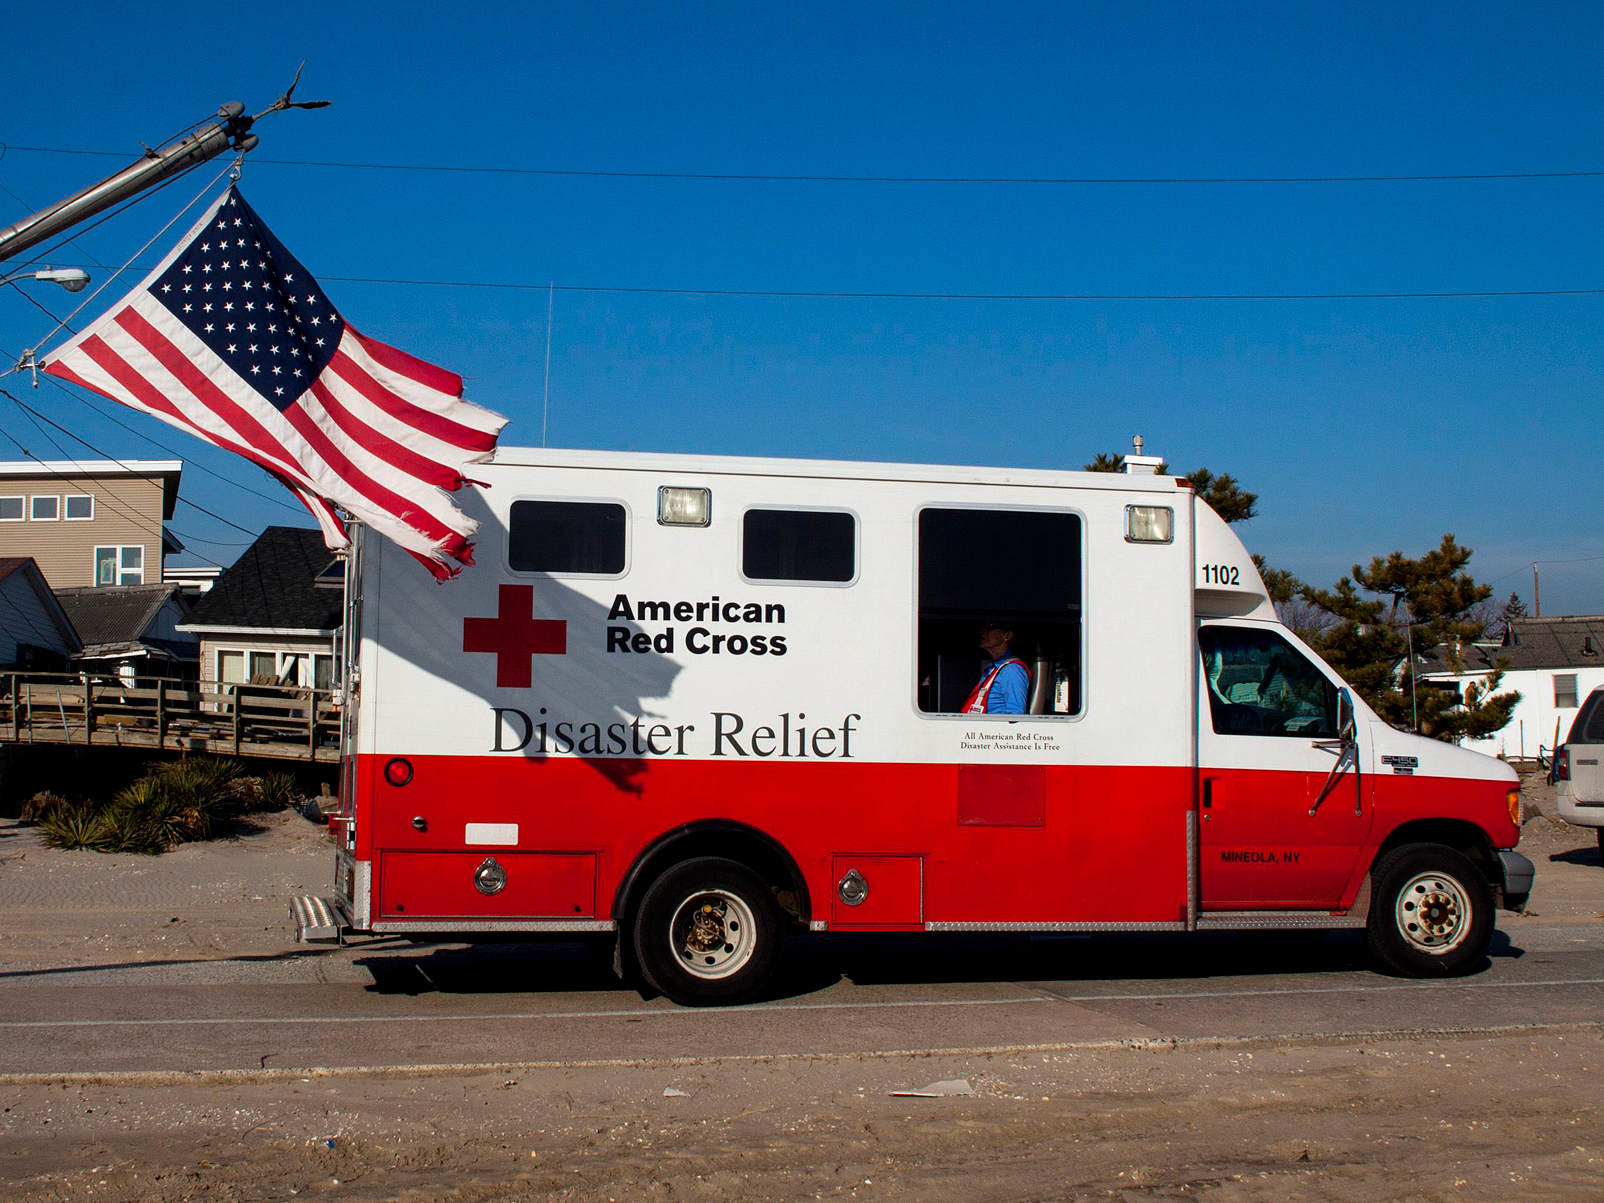 """In the aftermath of Superstorm Sandy, a former Red Cross official says, as many as 40 percent of the organization's emergency vehicles were assigned for public relations purposes. This photo, which shows one of the trucks in Long Island, N.Y., in January 2013, is one example of the many publicity photos taken by the Red Cross.Richard Rieckenberg is a former head of mass care for the American Red Cross and a retired Navy chief engineer for nuclear submarines. """"I think that they lost confidence in their ability to do the right thing,"""" he says, """"and they did the next best thing: 'What can we do to make people think we're doing the right thing?' """"Police Lt. Matthew Teidemann of the Bergen County Office of Emergency Management, says he can't count on the Red Cross after it failed to help after Sandy. So he's filling pods with enough blankets, water and supplies for 400 people in case of an emergency evacuation or natural disaster.In the aftermath of Superstorm Sandy, a former Red Cross official says, as many as 40 percent of the organization's emergency vehicles were assigned for public relations purposes. This photo, which shows one of the trucks in Long Island, N.Y., in January 2013, is one example of the many publicity photos taken by the Red Cross.Richard Rieckenberg is a former head of mass care for the American Red Cross and a retired Navy chief engineer for nuclear submarines. """"I think that they lost confidence in their ability to do the right thing,"""" he says, """"and they did the next best thing: 'What can we do to make people think we're doing the right thing?' """"Police Lt. Matthew Teidemann of the Bergen County Office of Emergency Management, says he can't count on the Red Cross after it failed to help after Sandy. So he's filling pods with enough blankets, water and supplies for 400 people in case of an emergency evacuation or natural disaster.In the aftermath of Superstorm Sandy, a former Red Cross official says, as many as 40 percent of the organization's emerge"""